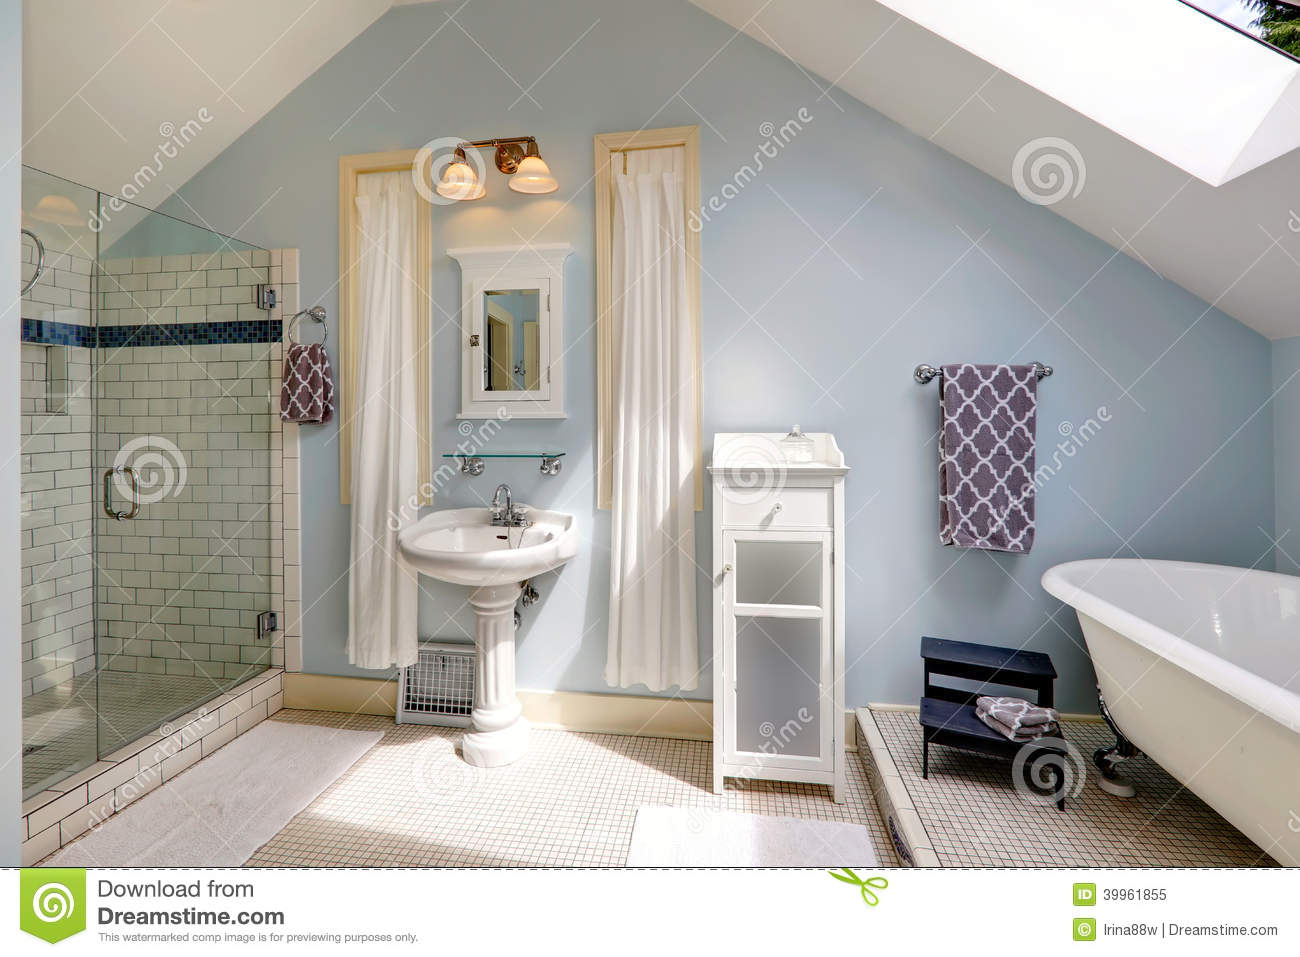 Velux Bathroom With Antique Bath Tub Stock Image Image Of Cabinet Space 39961855